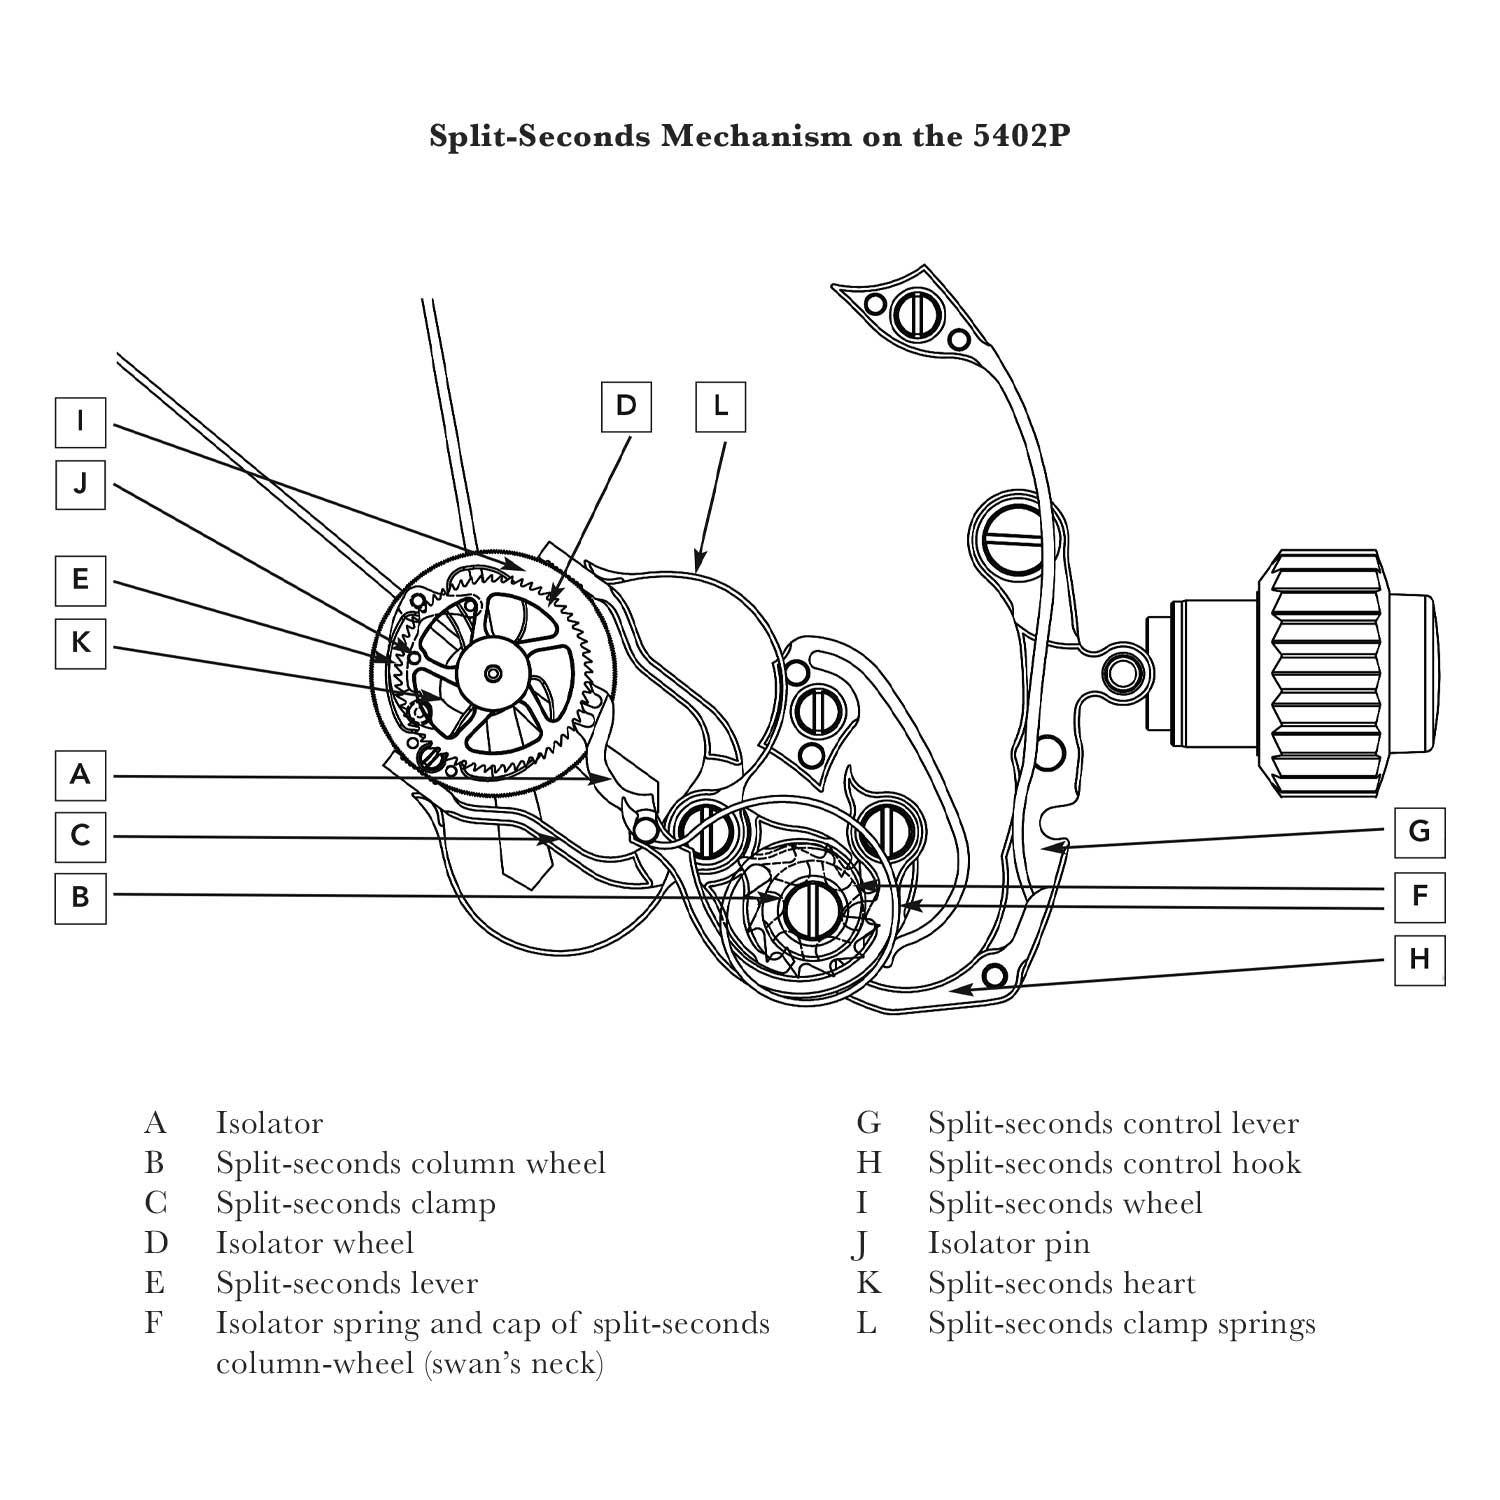 Parts of the split-seconds mechanism on the 5402's CH 29-535 PS Q